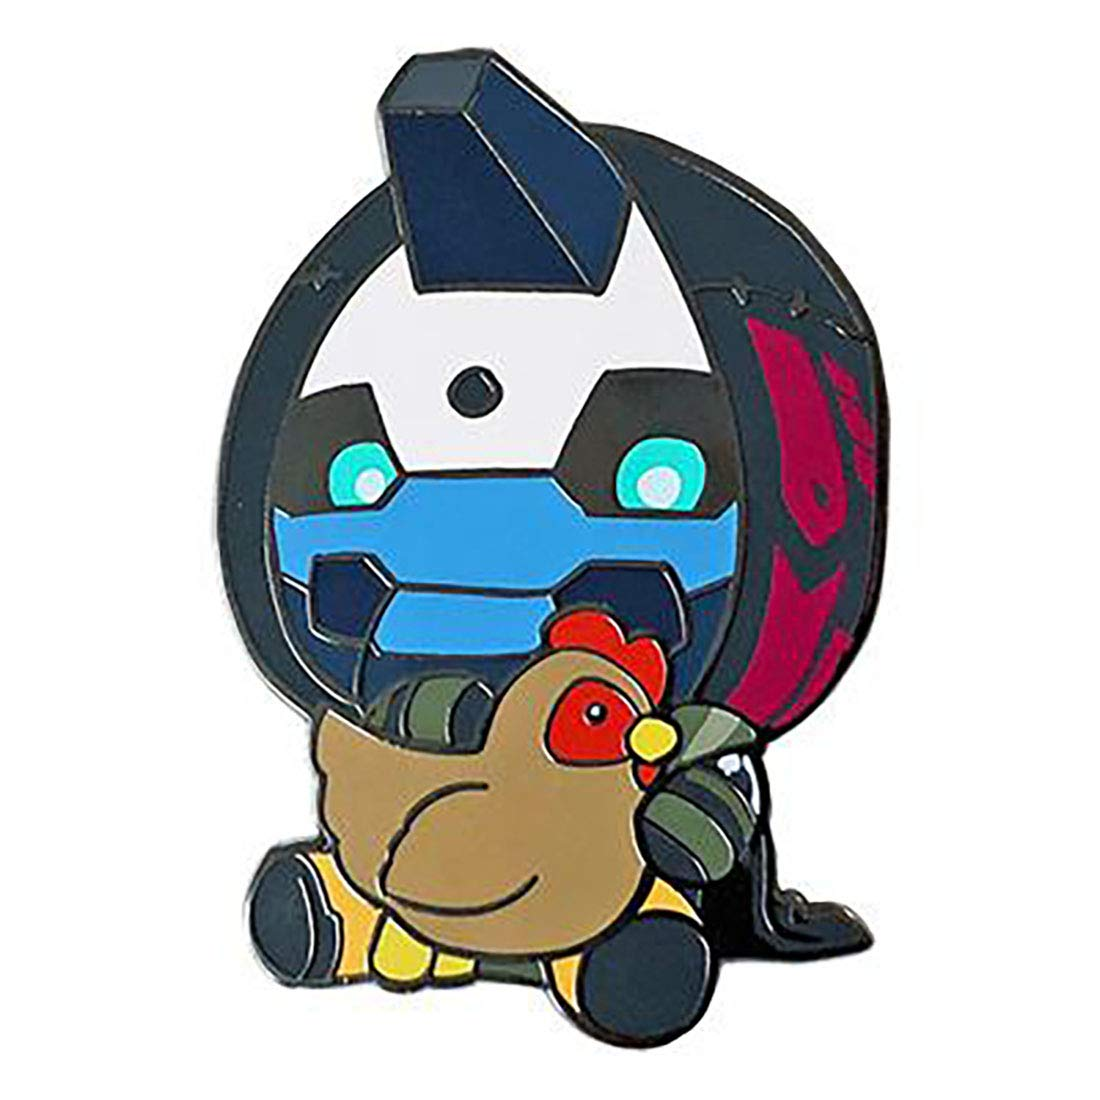 Amazon com: Destiny Cayde-6 with Chicken Pin: Clothing